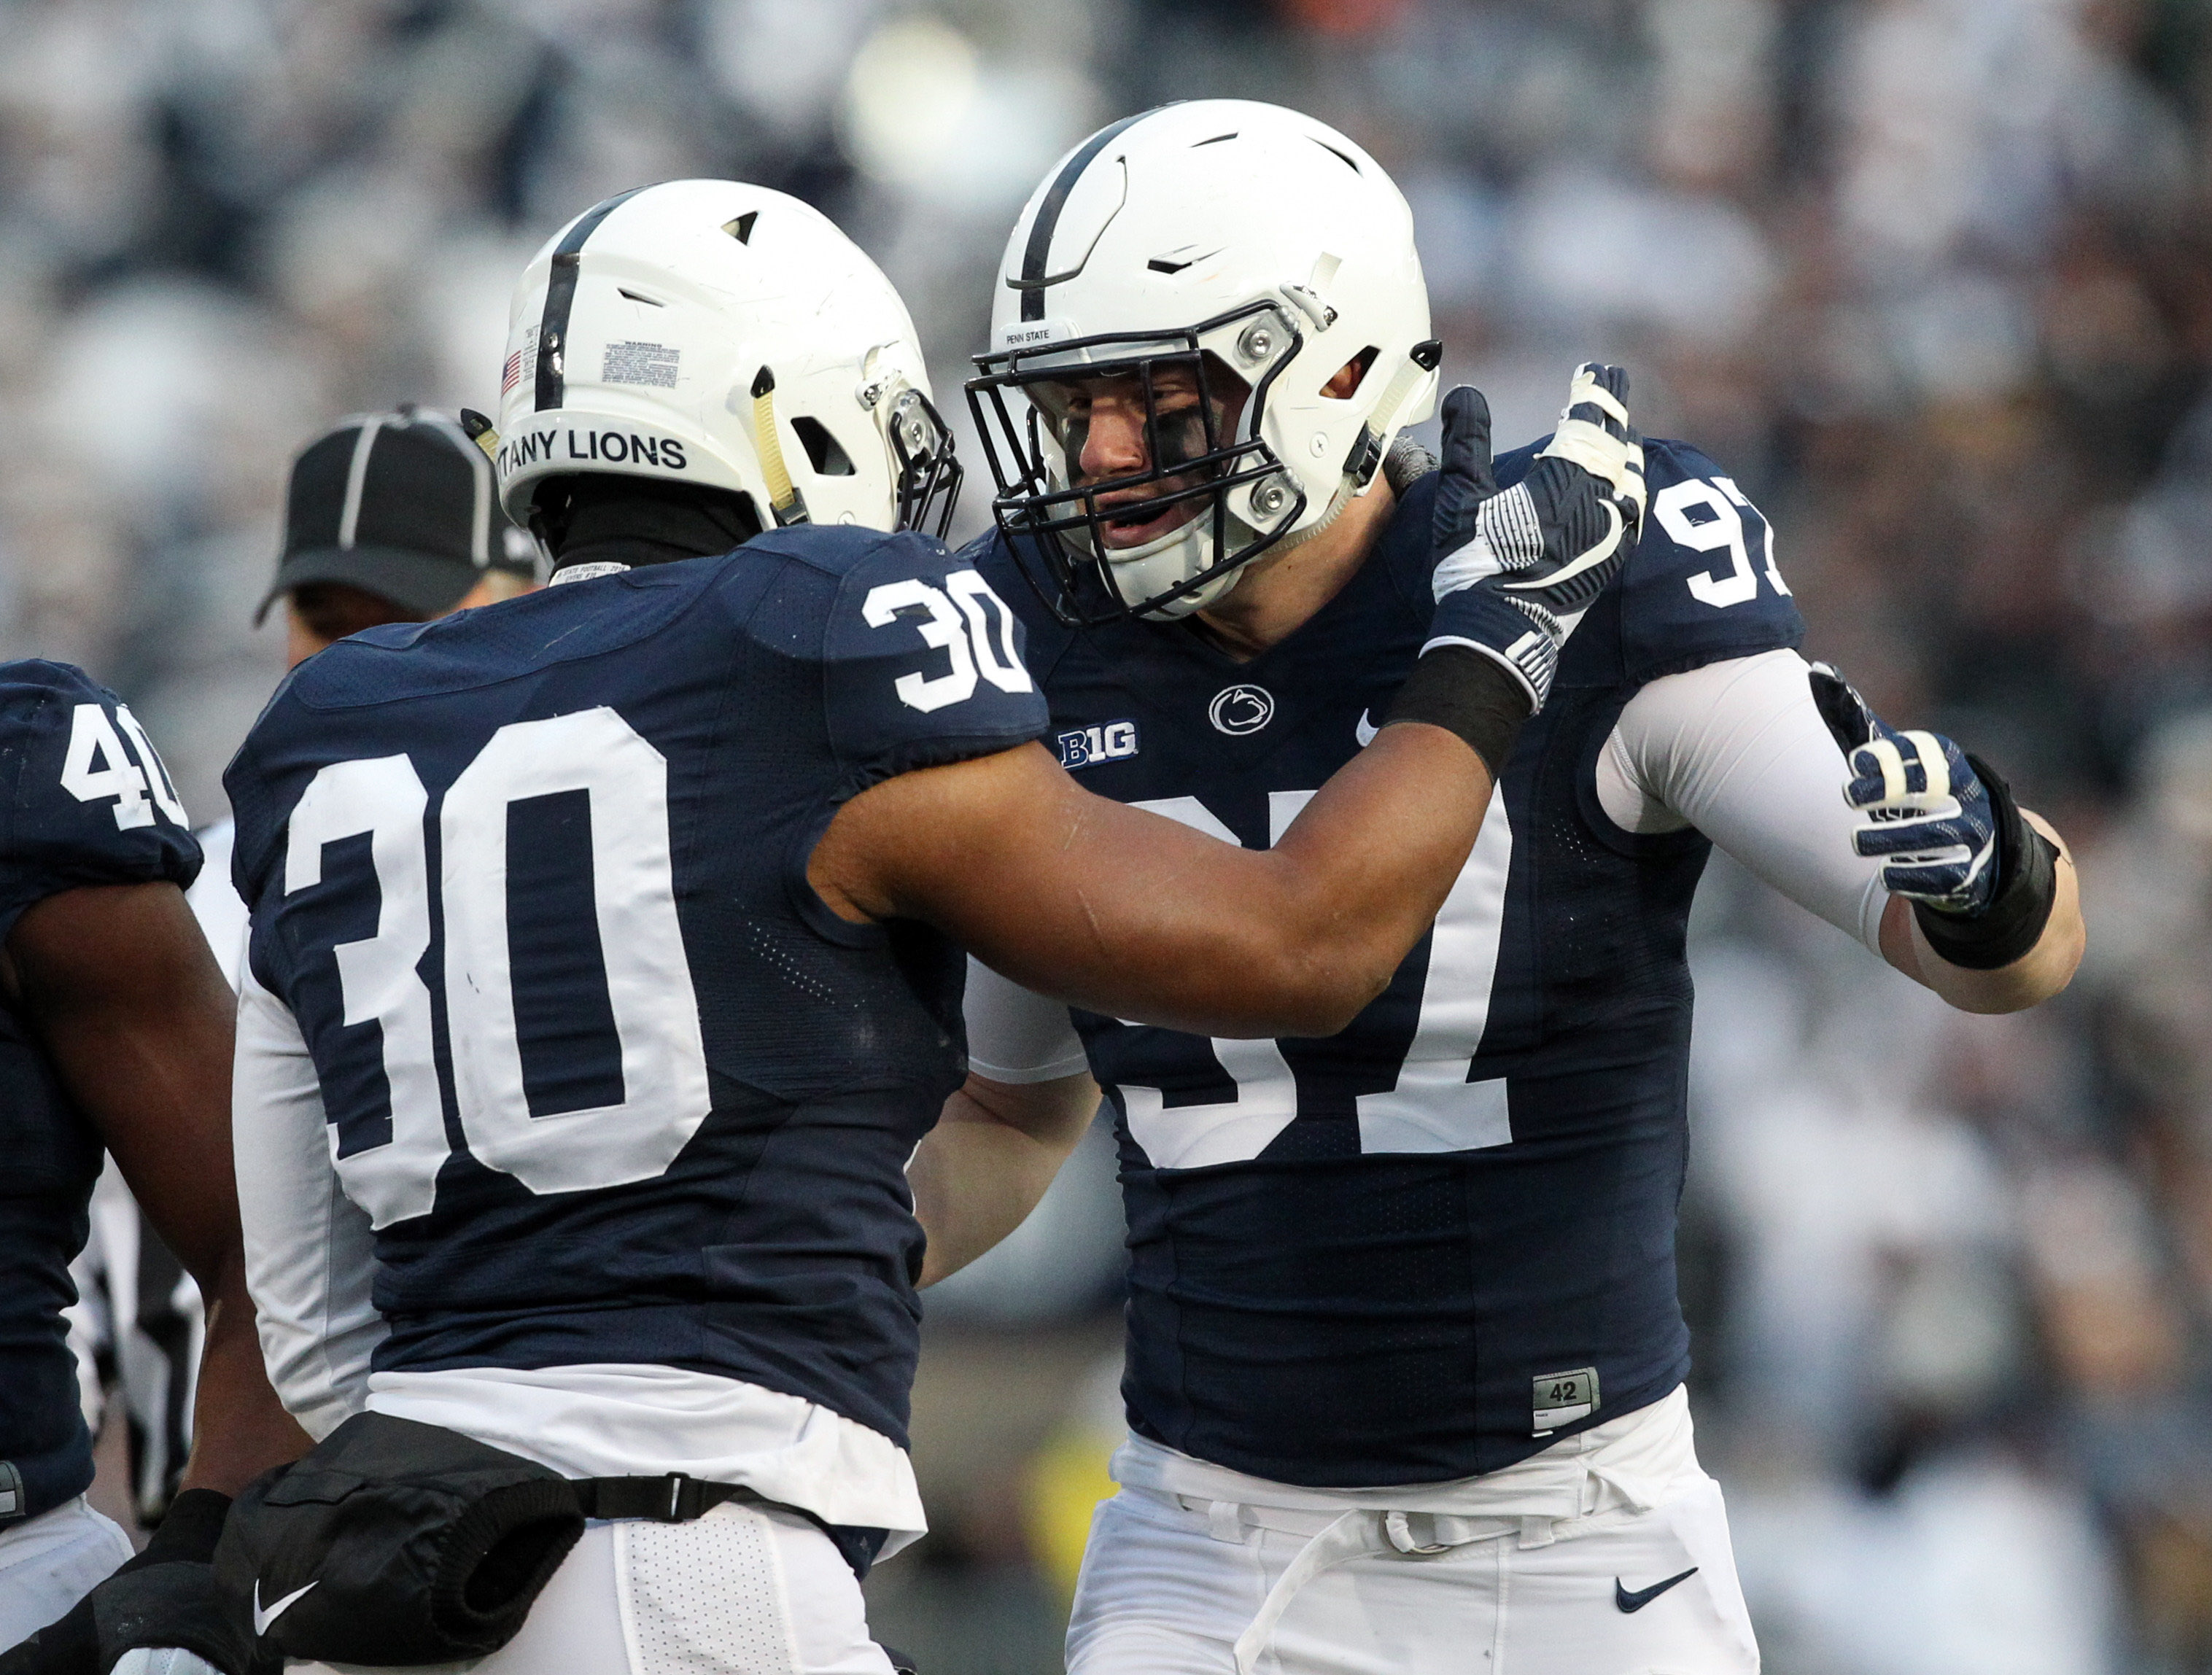 9718866-ncaa-football-michigan-state-at-penn-state